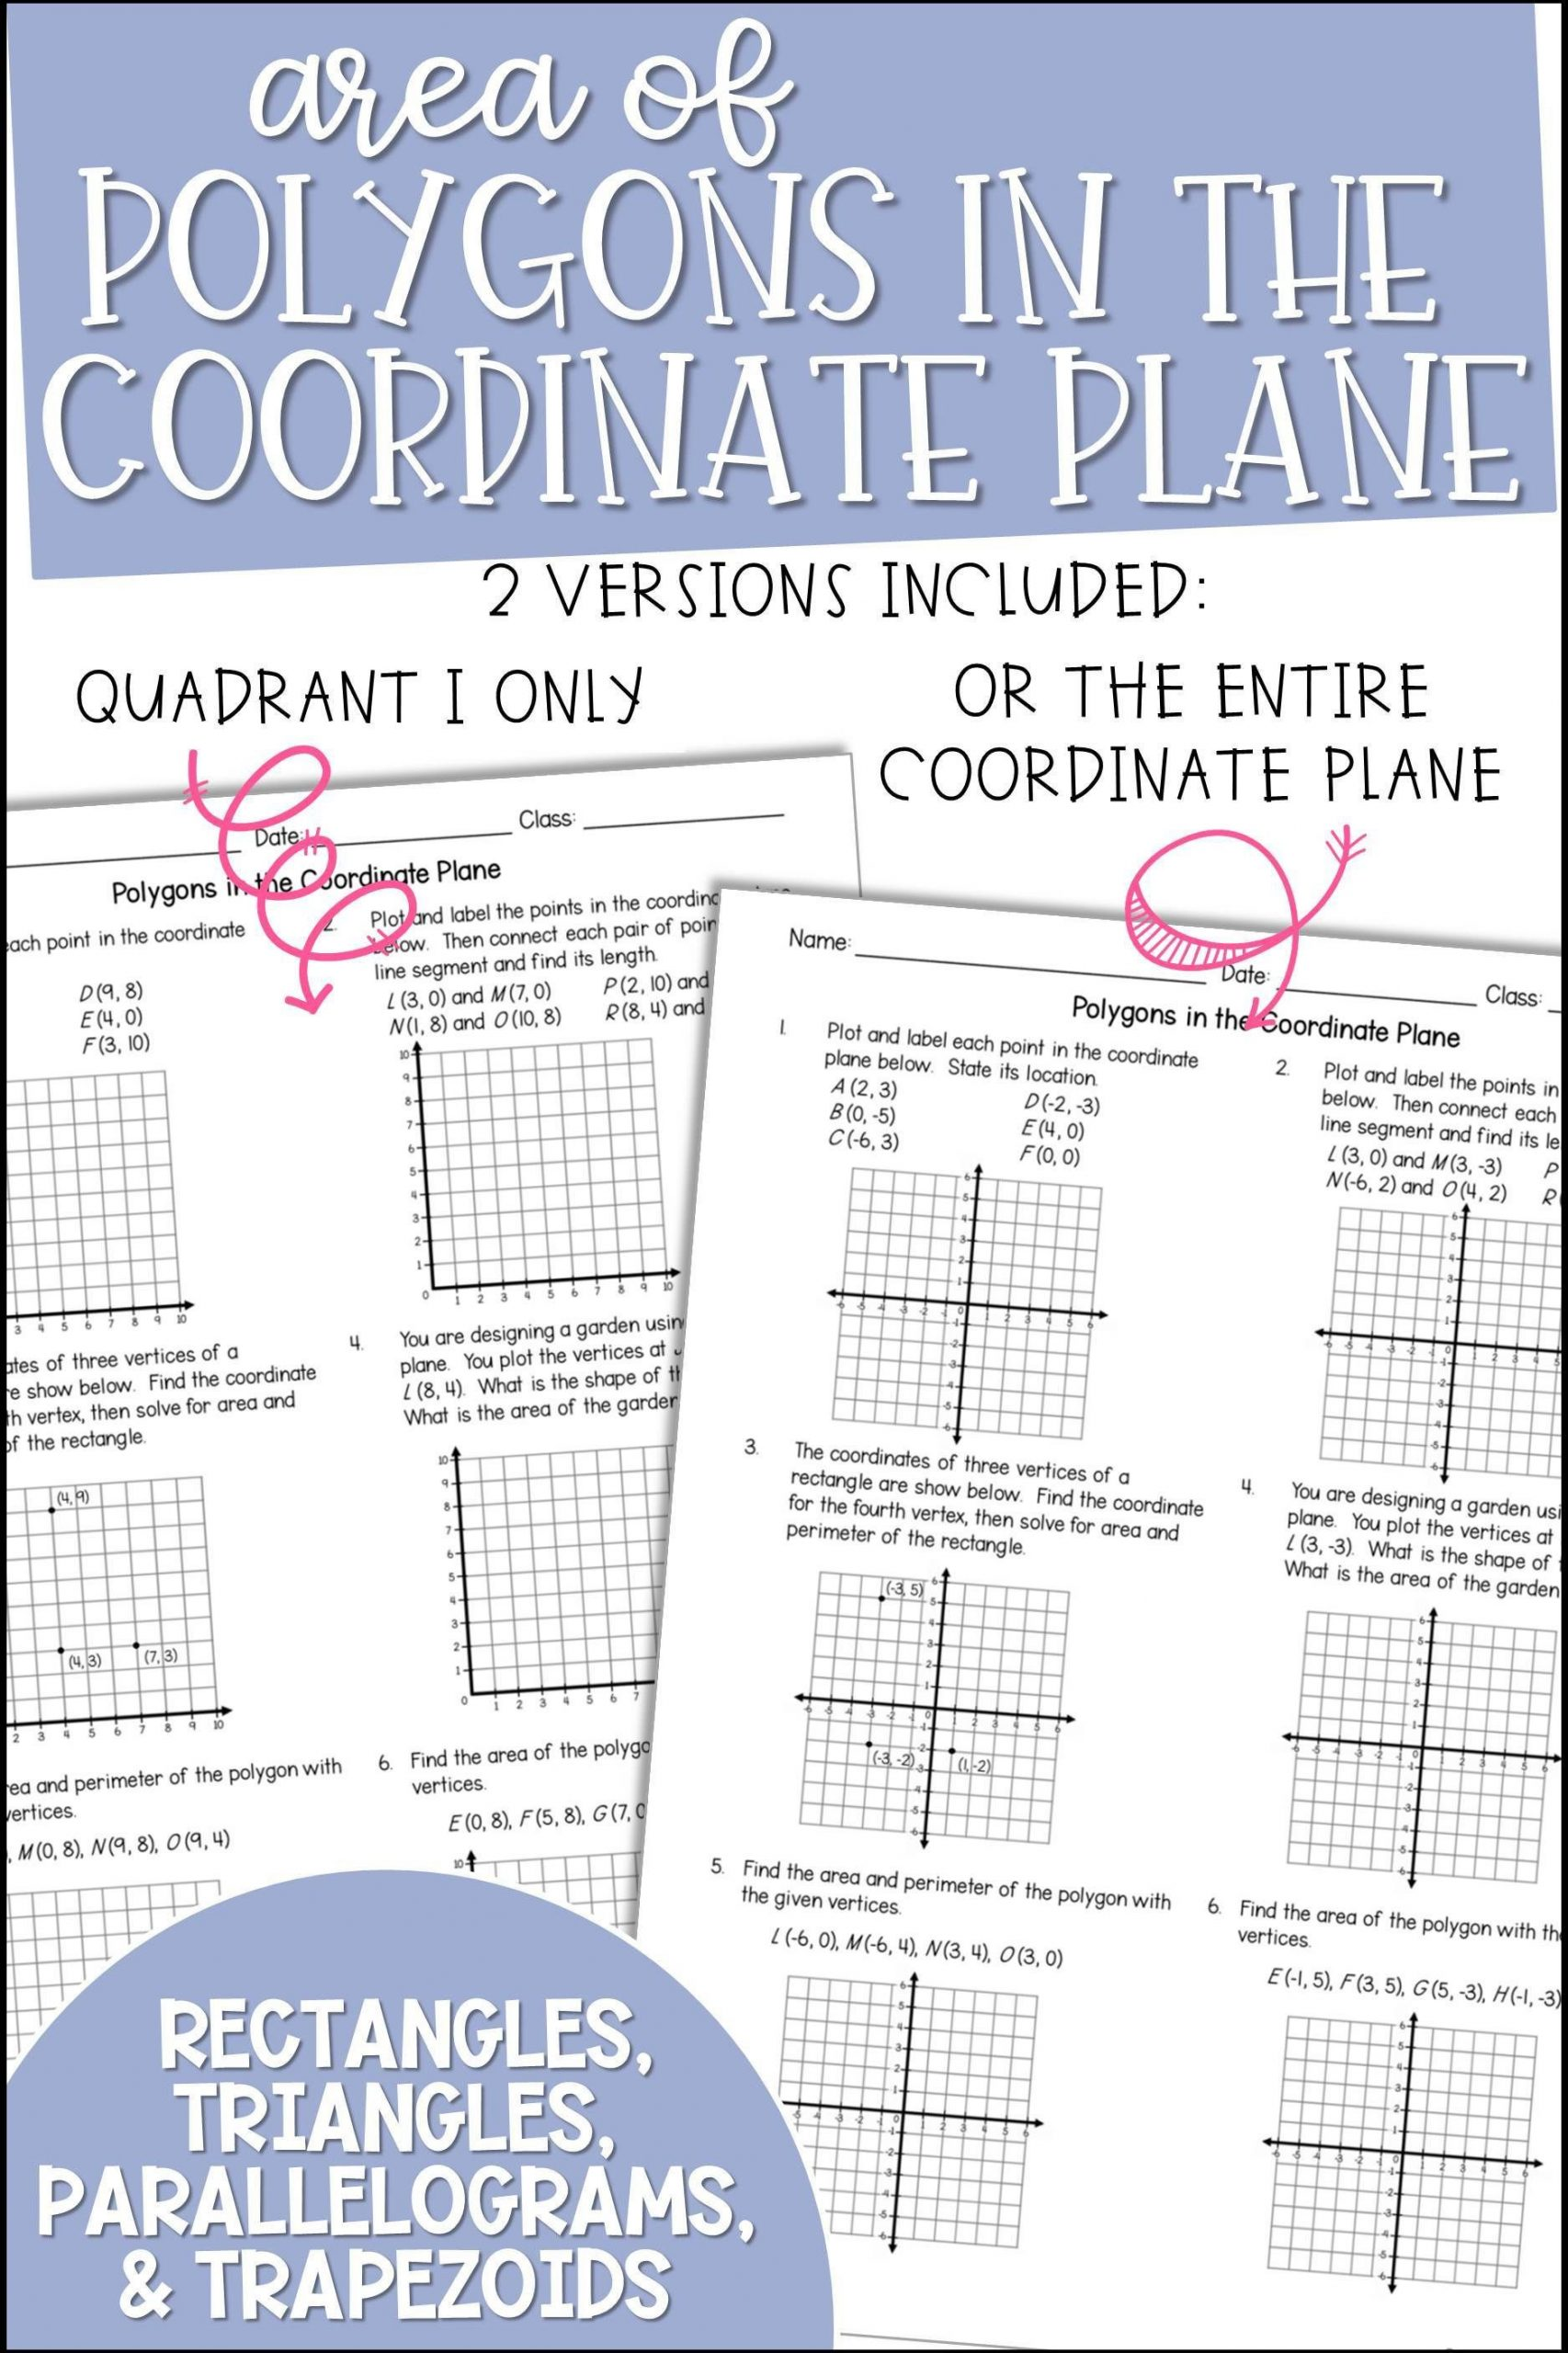 Coordinate Plane Worksheets Middle School area Of Polygons In the Coordinate Plane